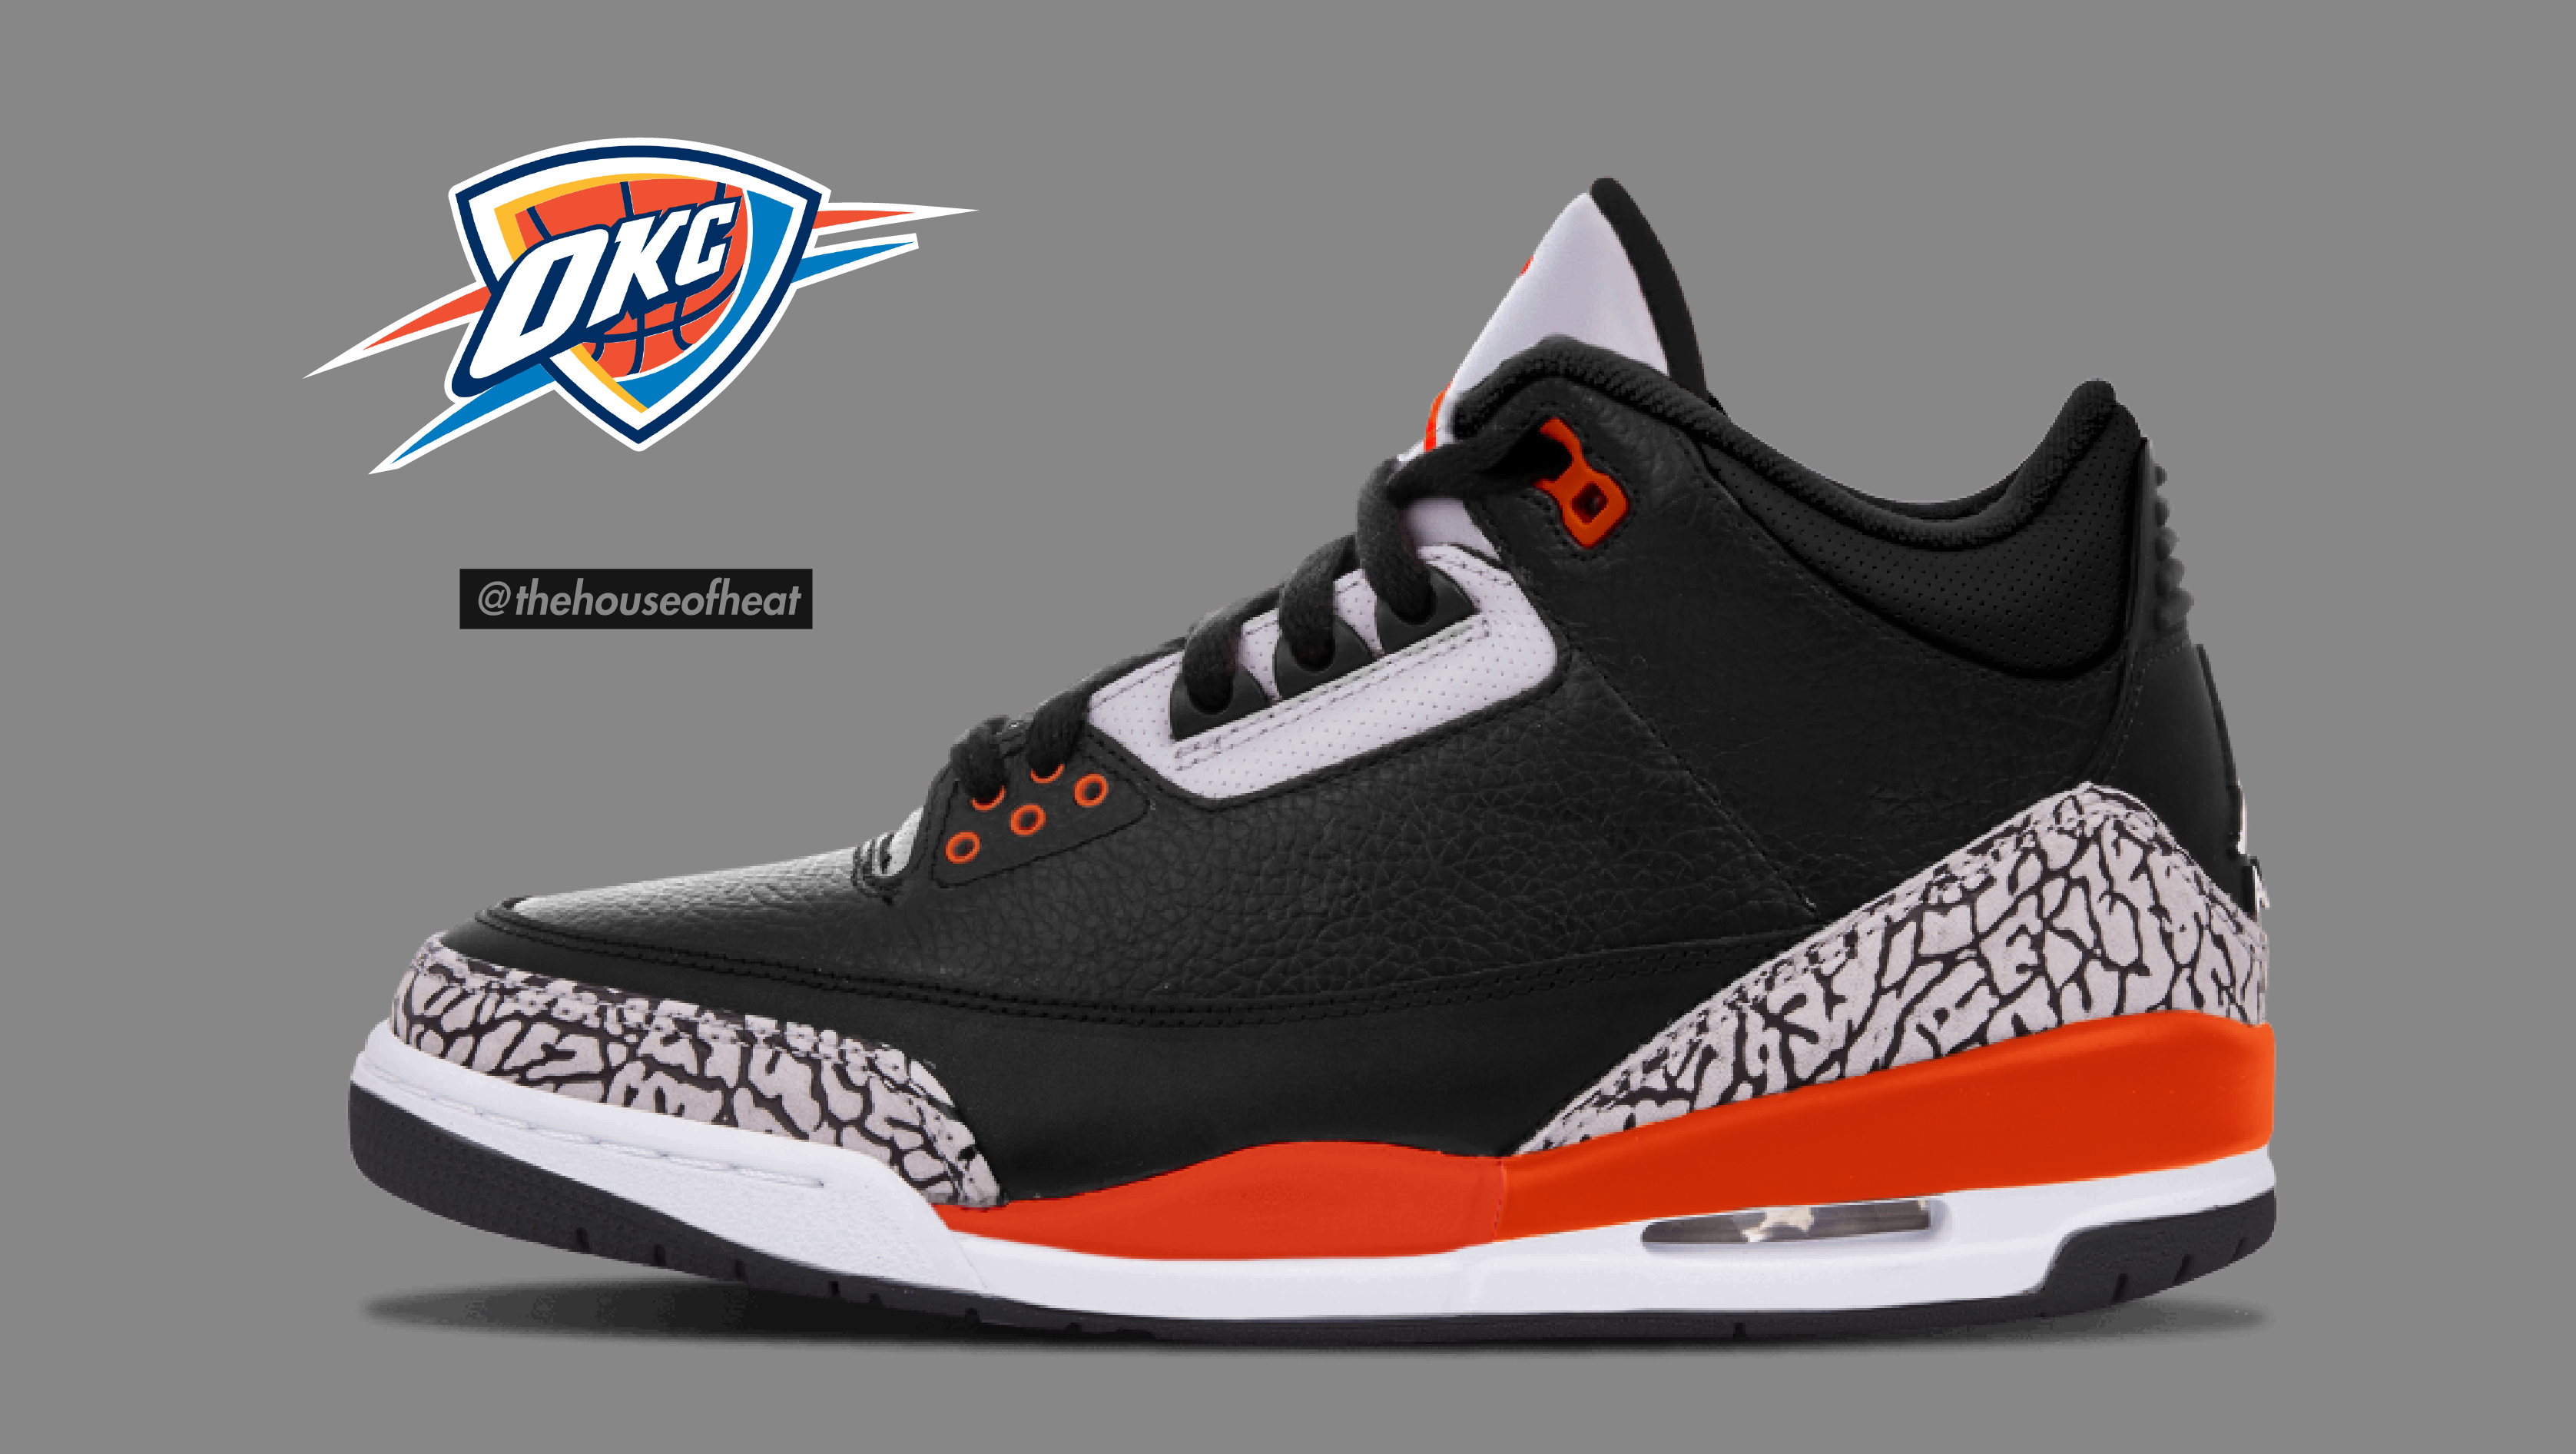 huge selection of 55758 9e0a1 Check out Russell s latest Jordan PE